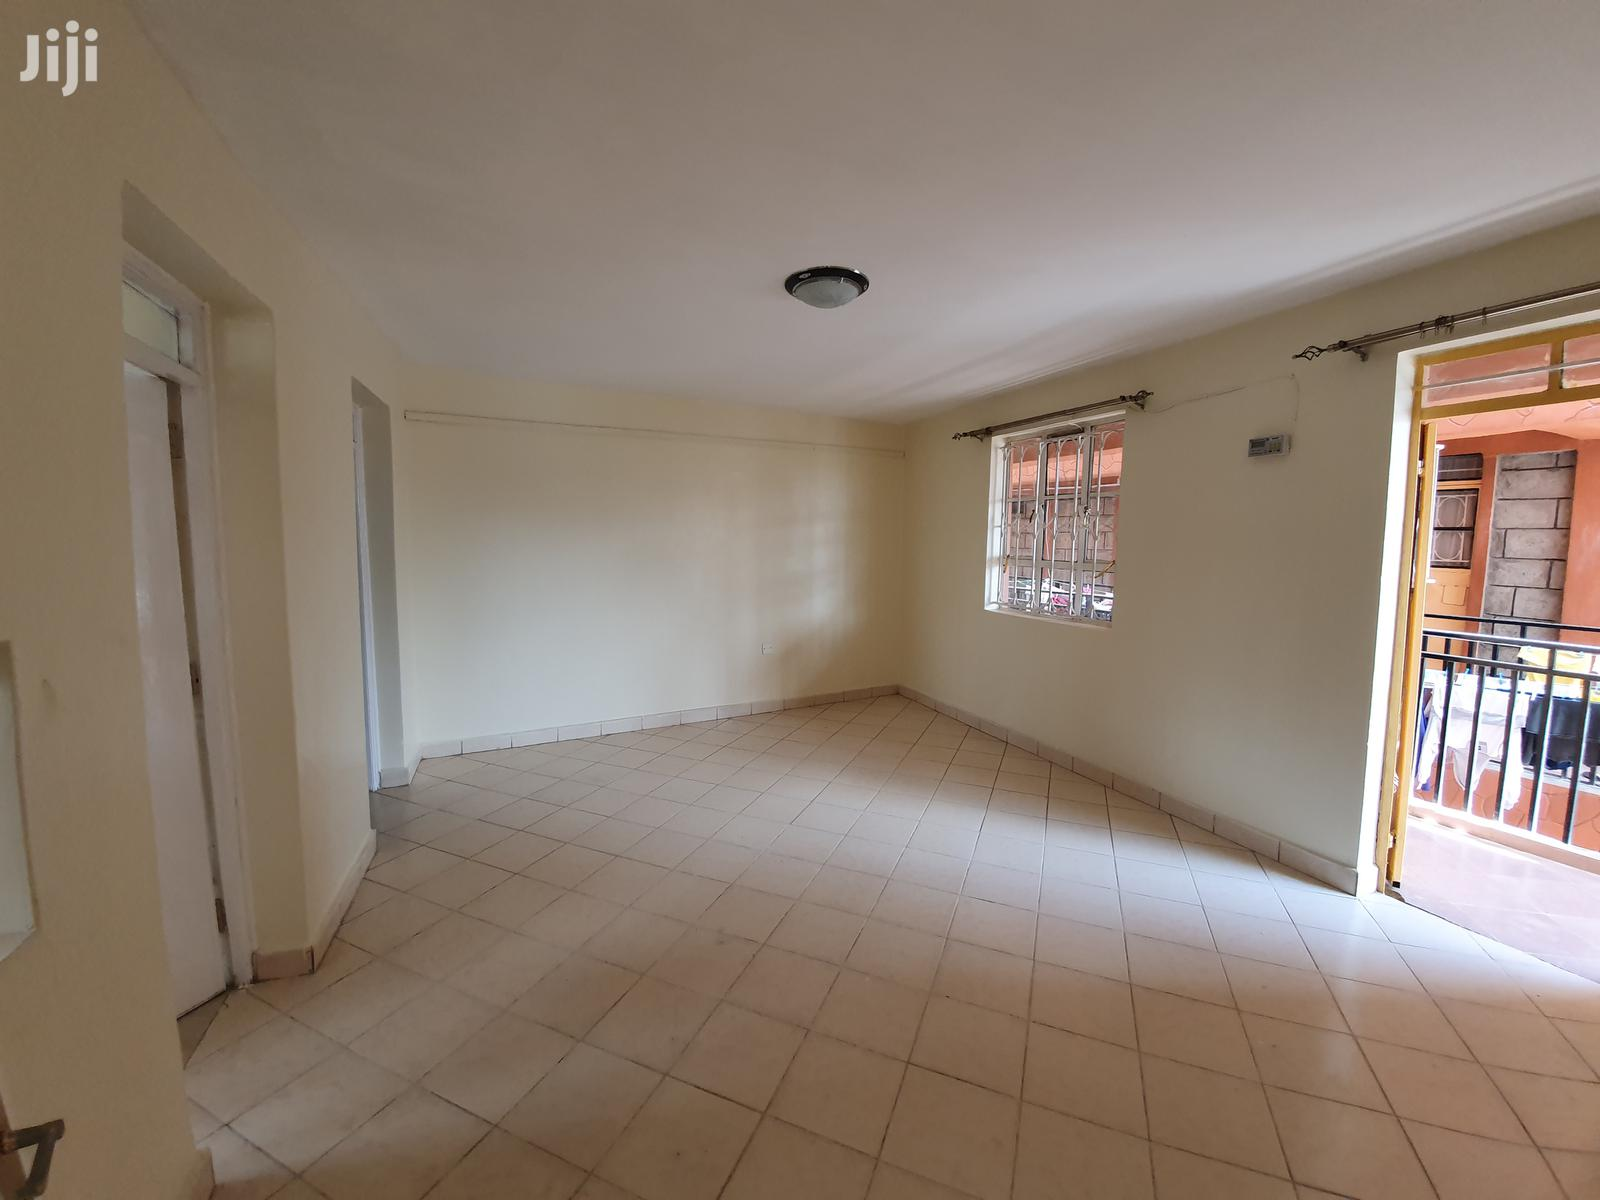 Two and One Bedroom Houses Available. ROCKY HILL KITENGELA | Houses & Apartments For Rent for sale in Kitengela, Kajiado, Kenya